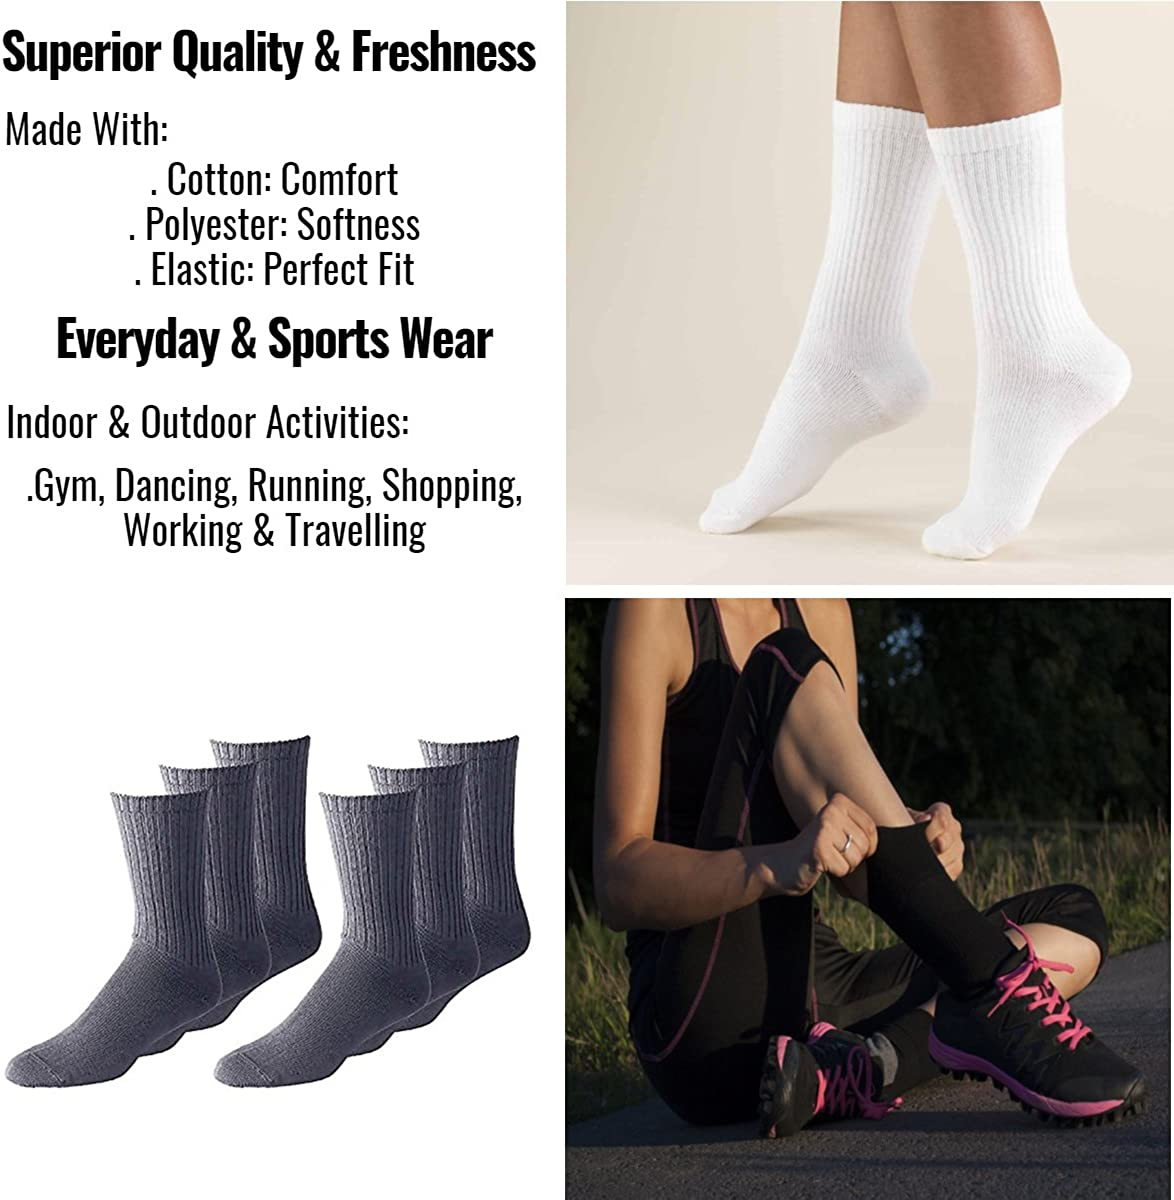 Bulk Wholesale Packs Mens Classic Crew Socks Shoe Size 6 to 12 in Black and White